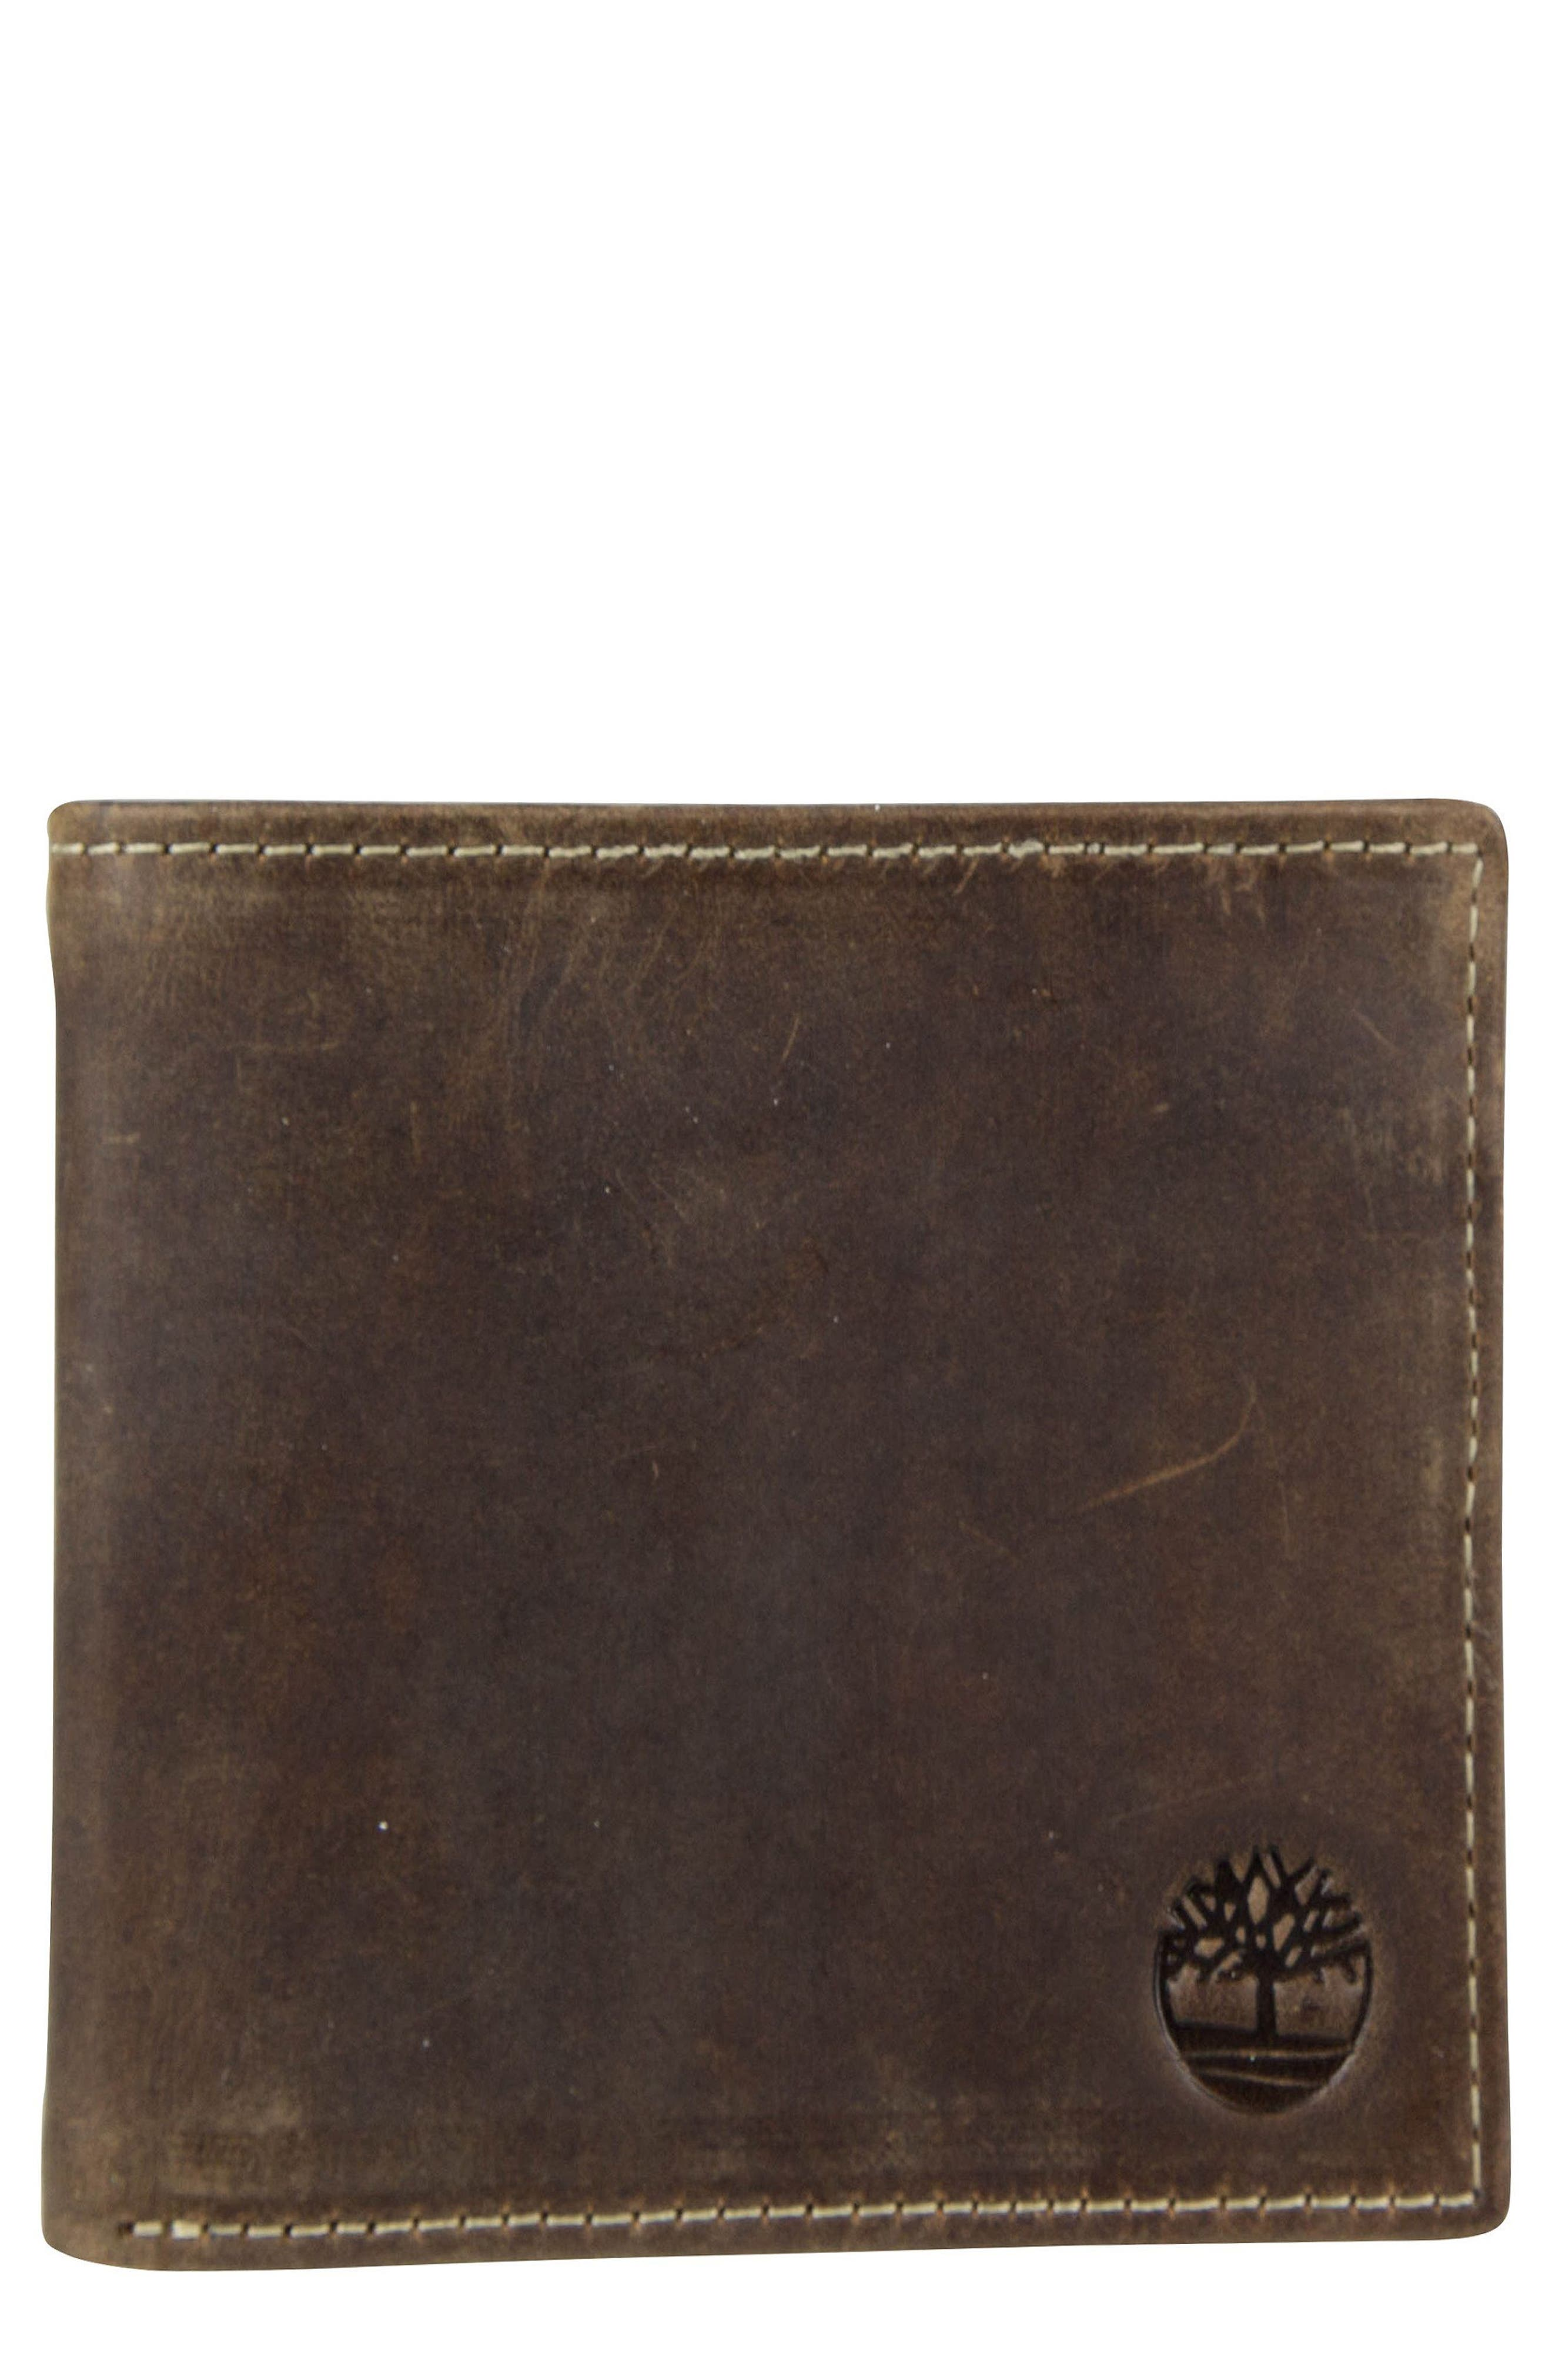 TIMBERLAND Distressed Leather Wallet, Main, color, 200